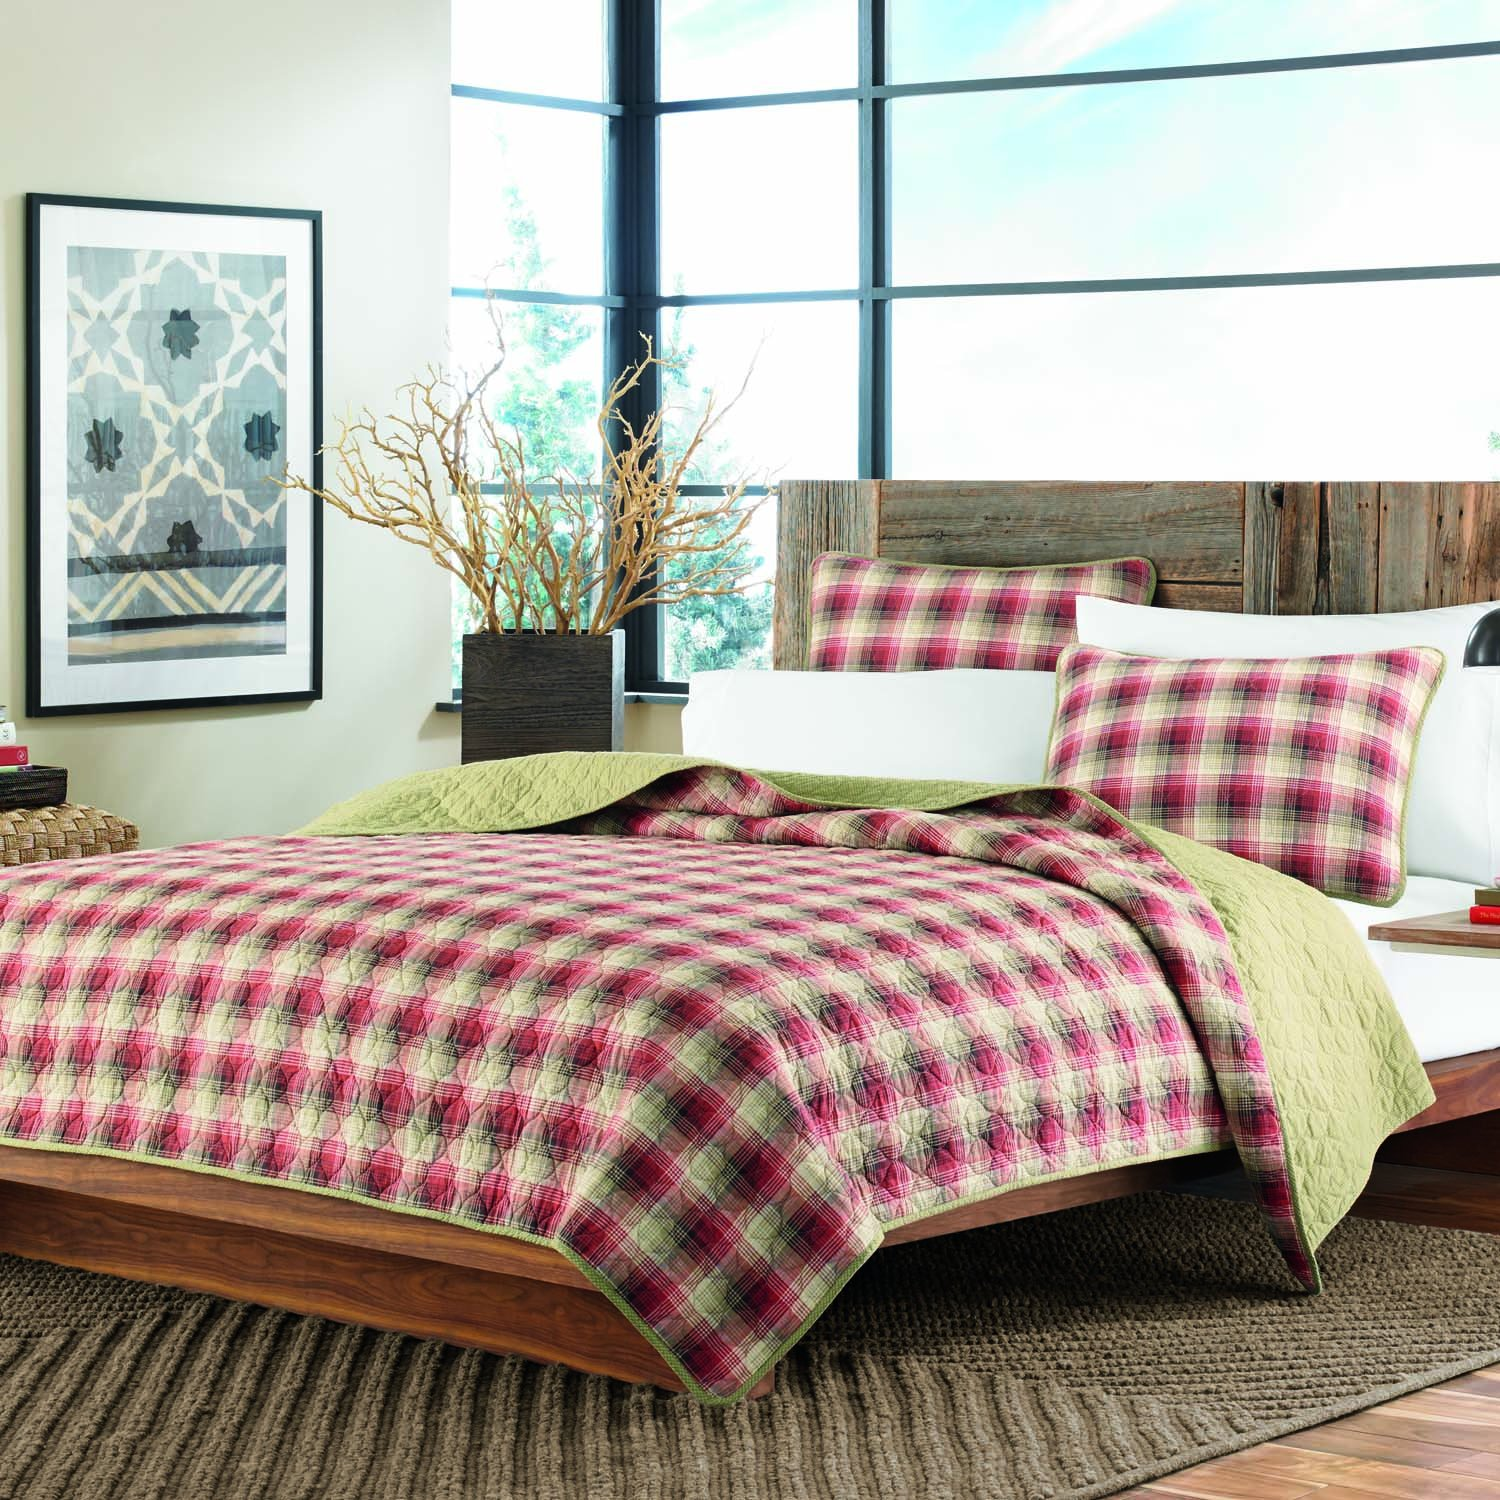 Eddie Bauer Ravena Plaid 3-Piece Cotton Reversible Quilt Set, Full/Queen